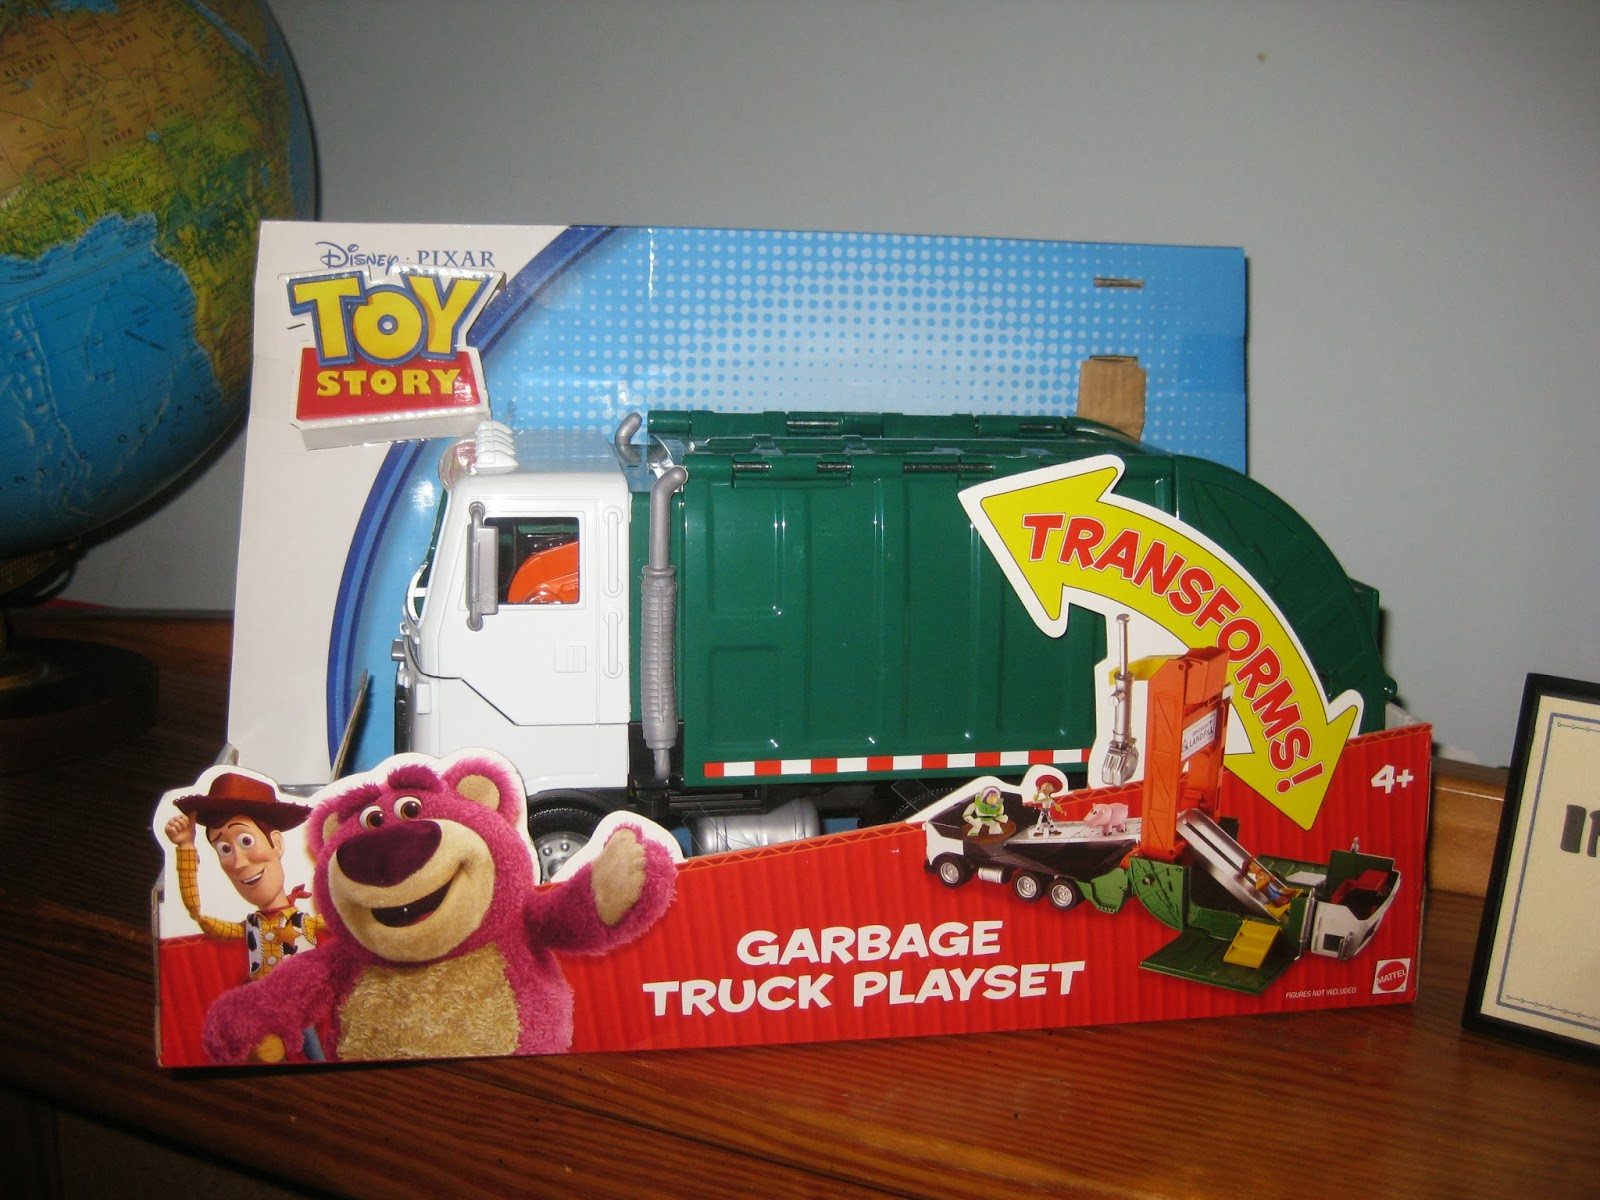 Fisher price imaginext toy story 3 garbage truck